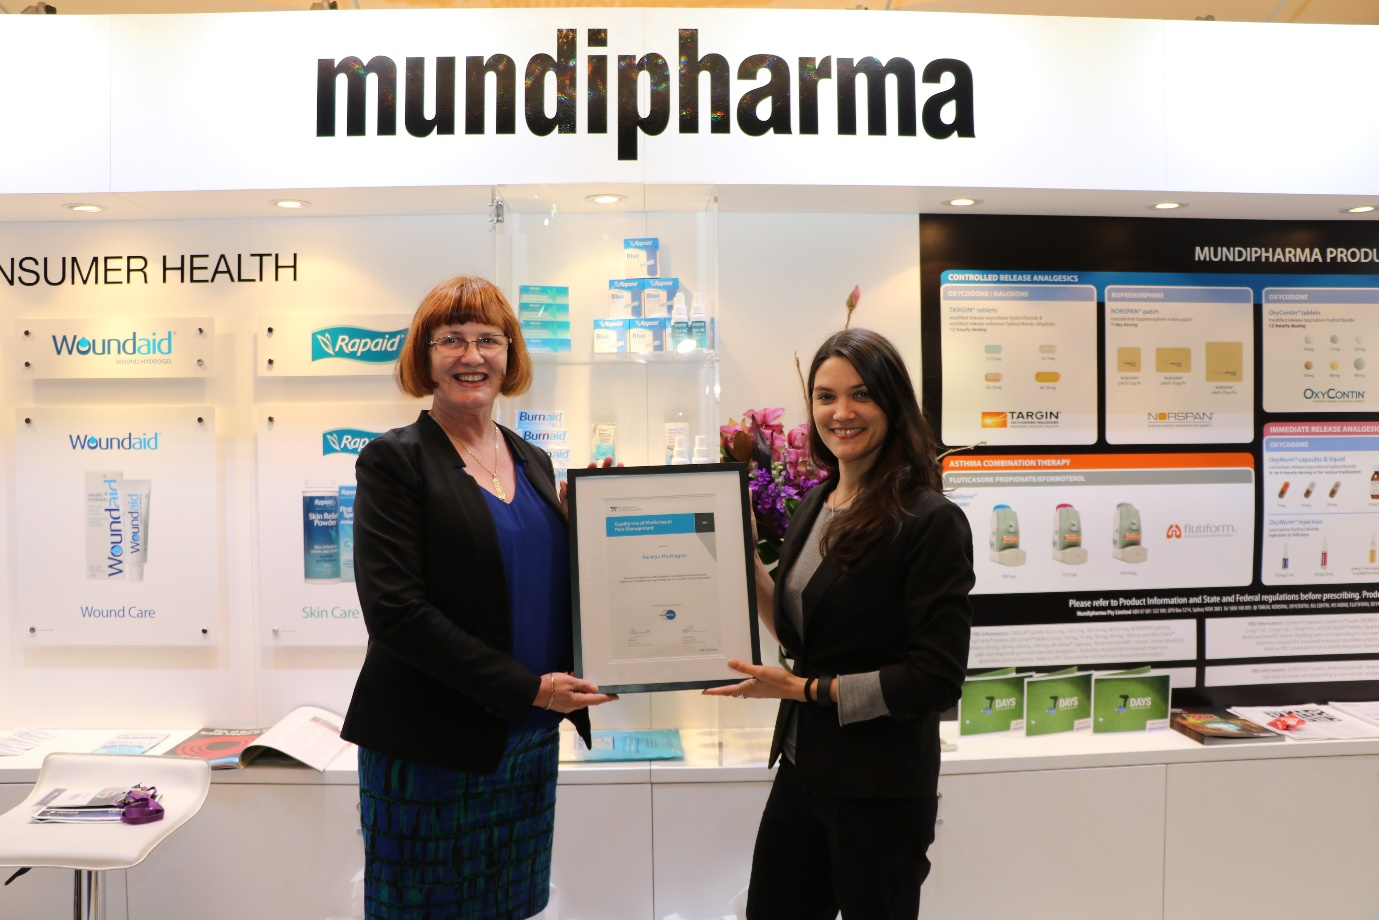 Karalyn Huxhagen wins 2015 PSA QUM in Pain Management Award